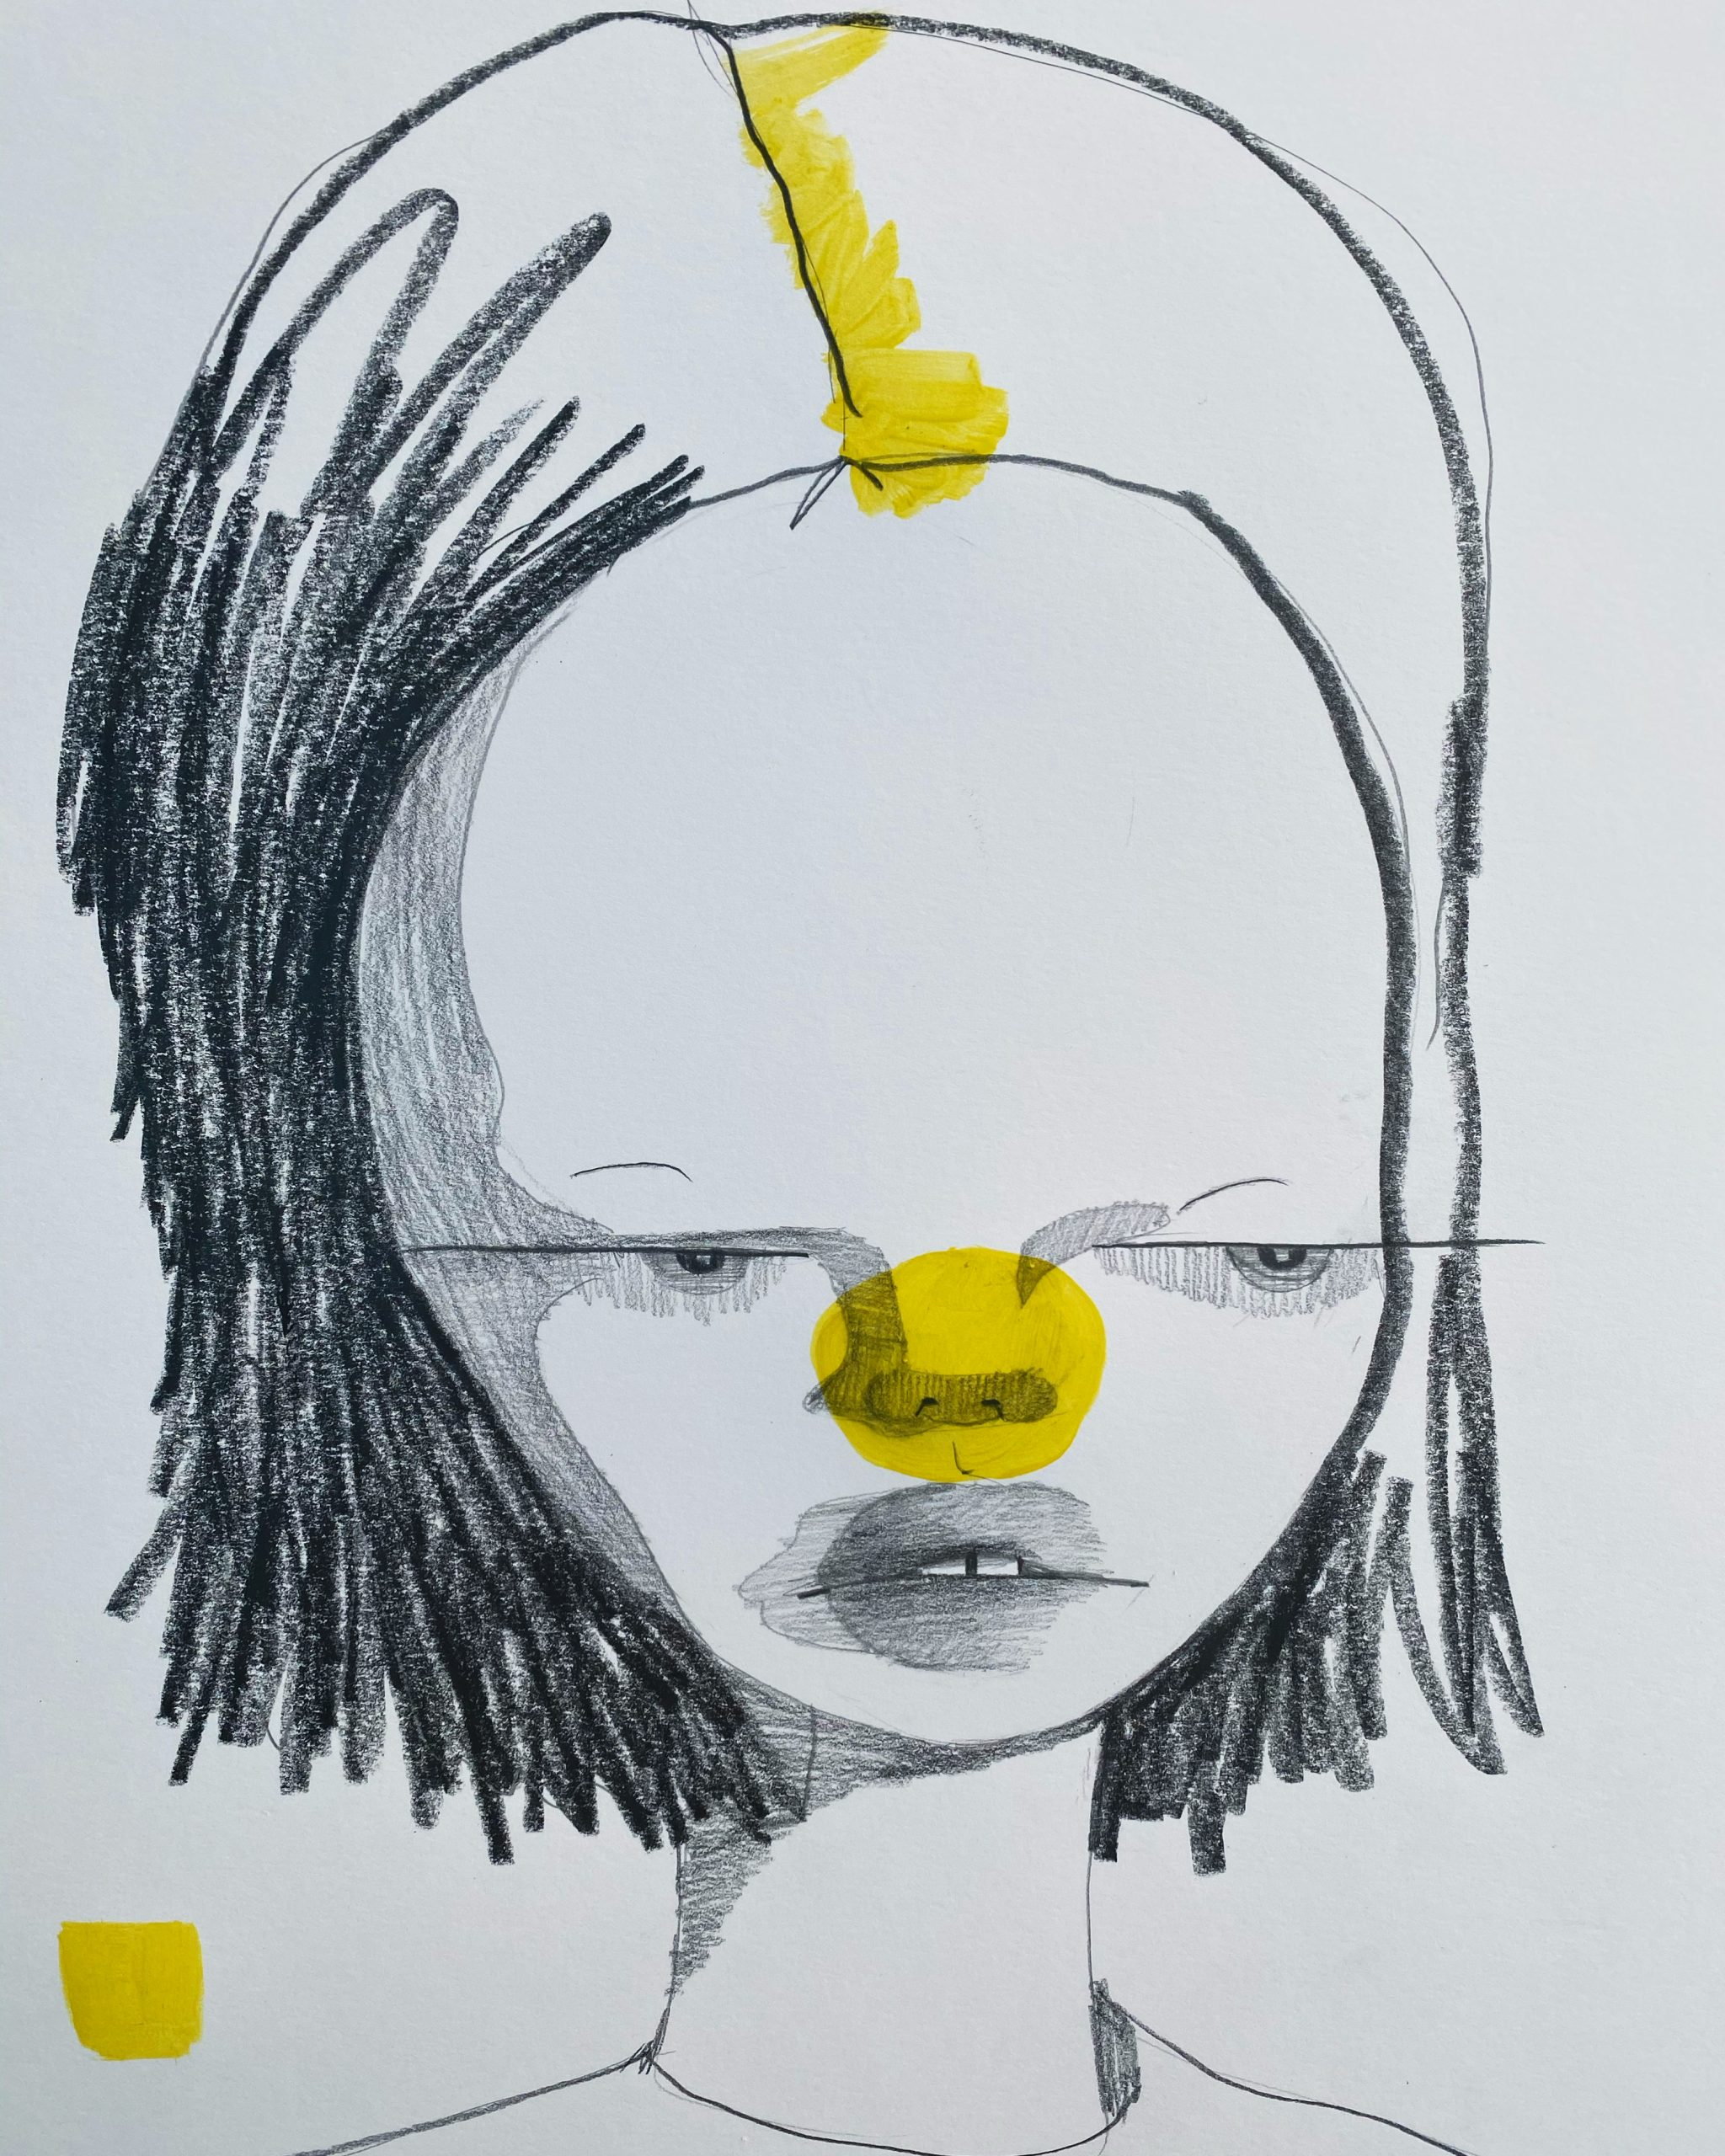 Drawing 1 by Ben Evans